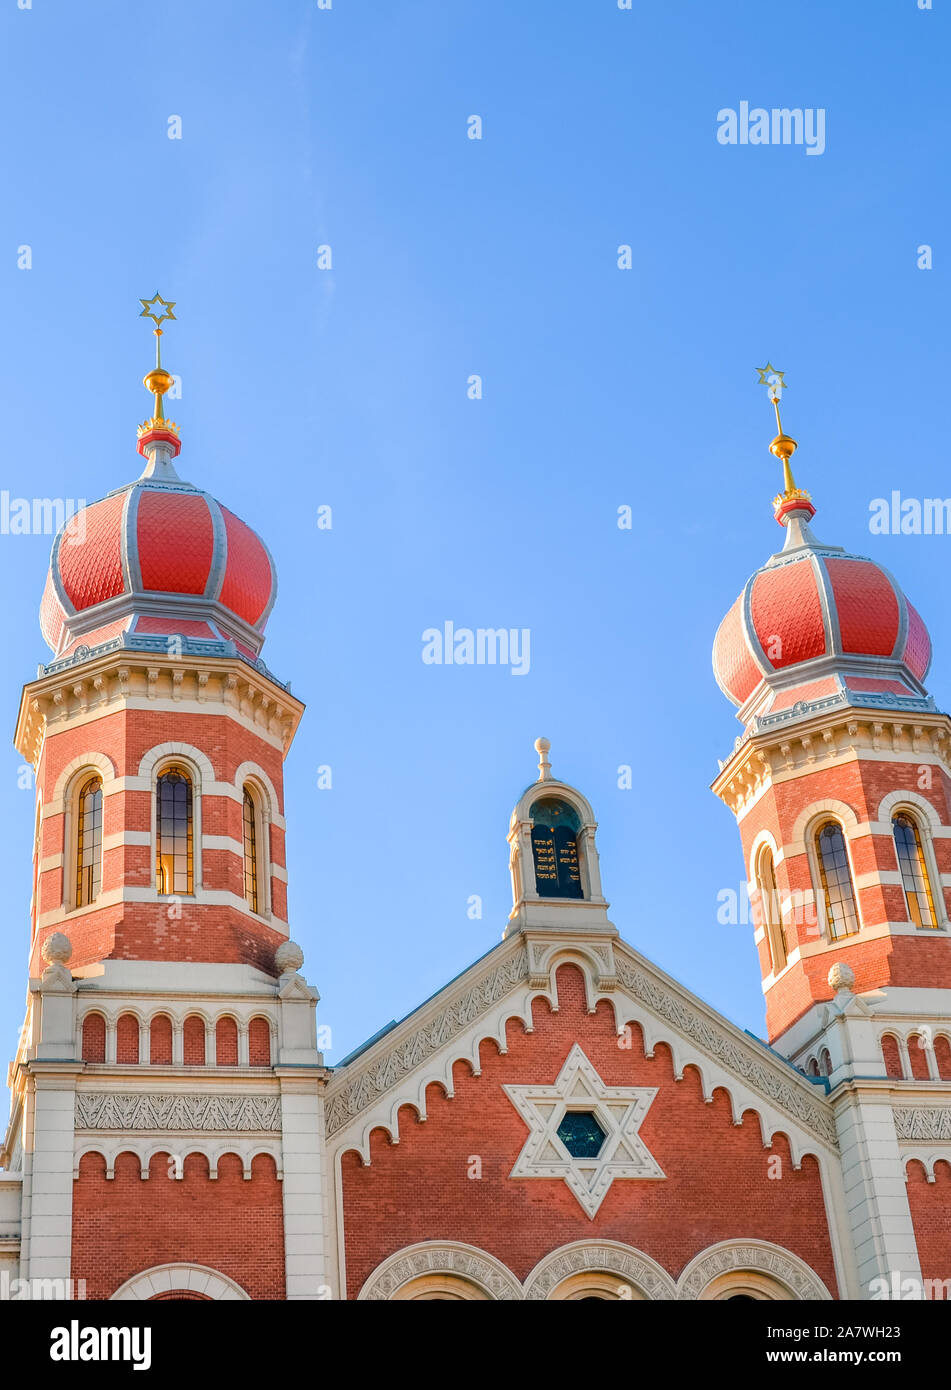 Vertical photo of the Great Synagogue in Plzen, Czech Republic. The second-largest synagogue in Europe. Detail of facade of the Jewish religious building with two onion domes. Tourist landmarks. Stock Photo